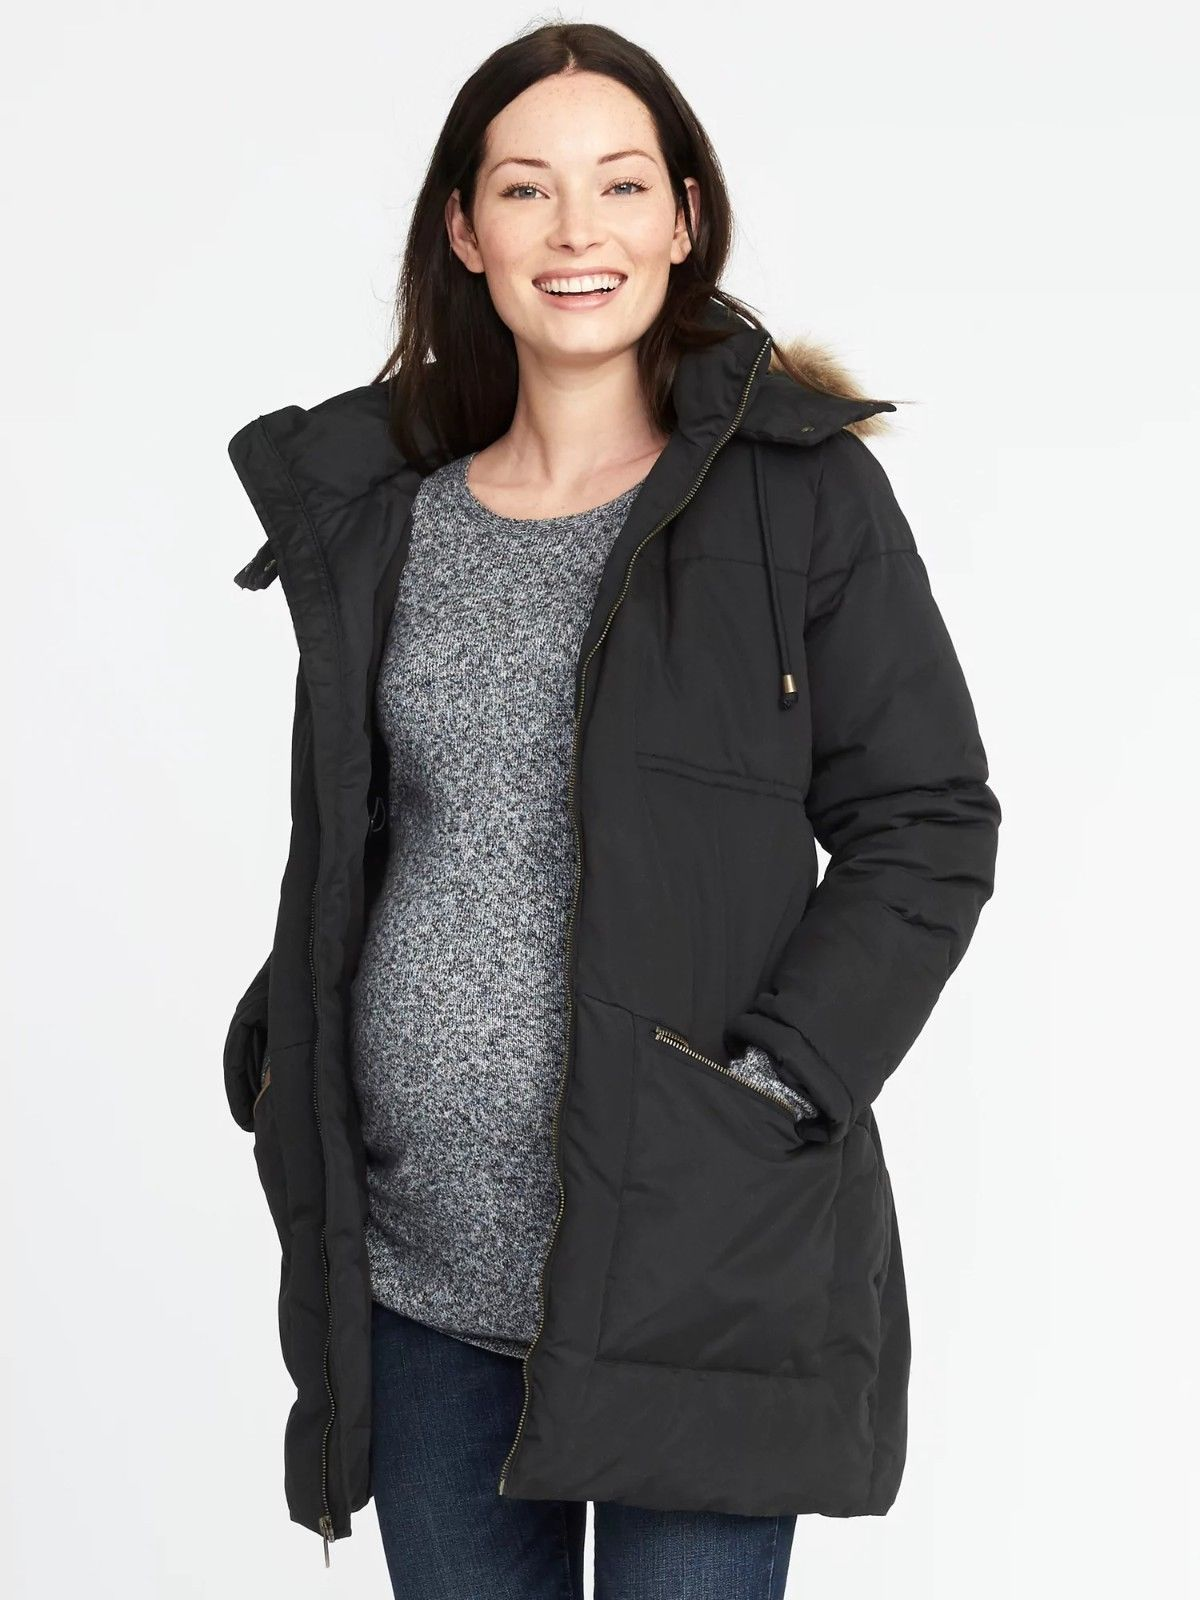 62f602f9eba5b Coats and Jackets 63856: Old Navy Maternity Hooded Frost Free Parka Jacket  Coat Nwt! L Large -> BUY IT NOW ONLY: $59.99 on eBay!